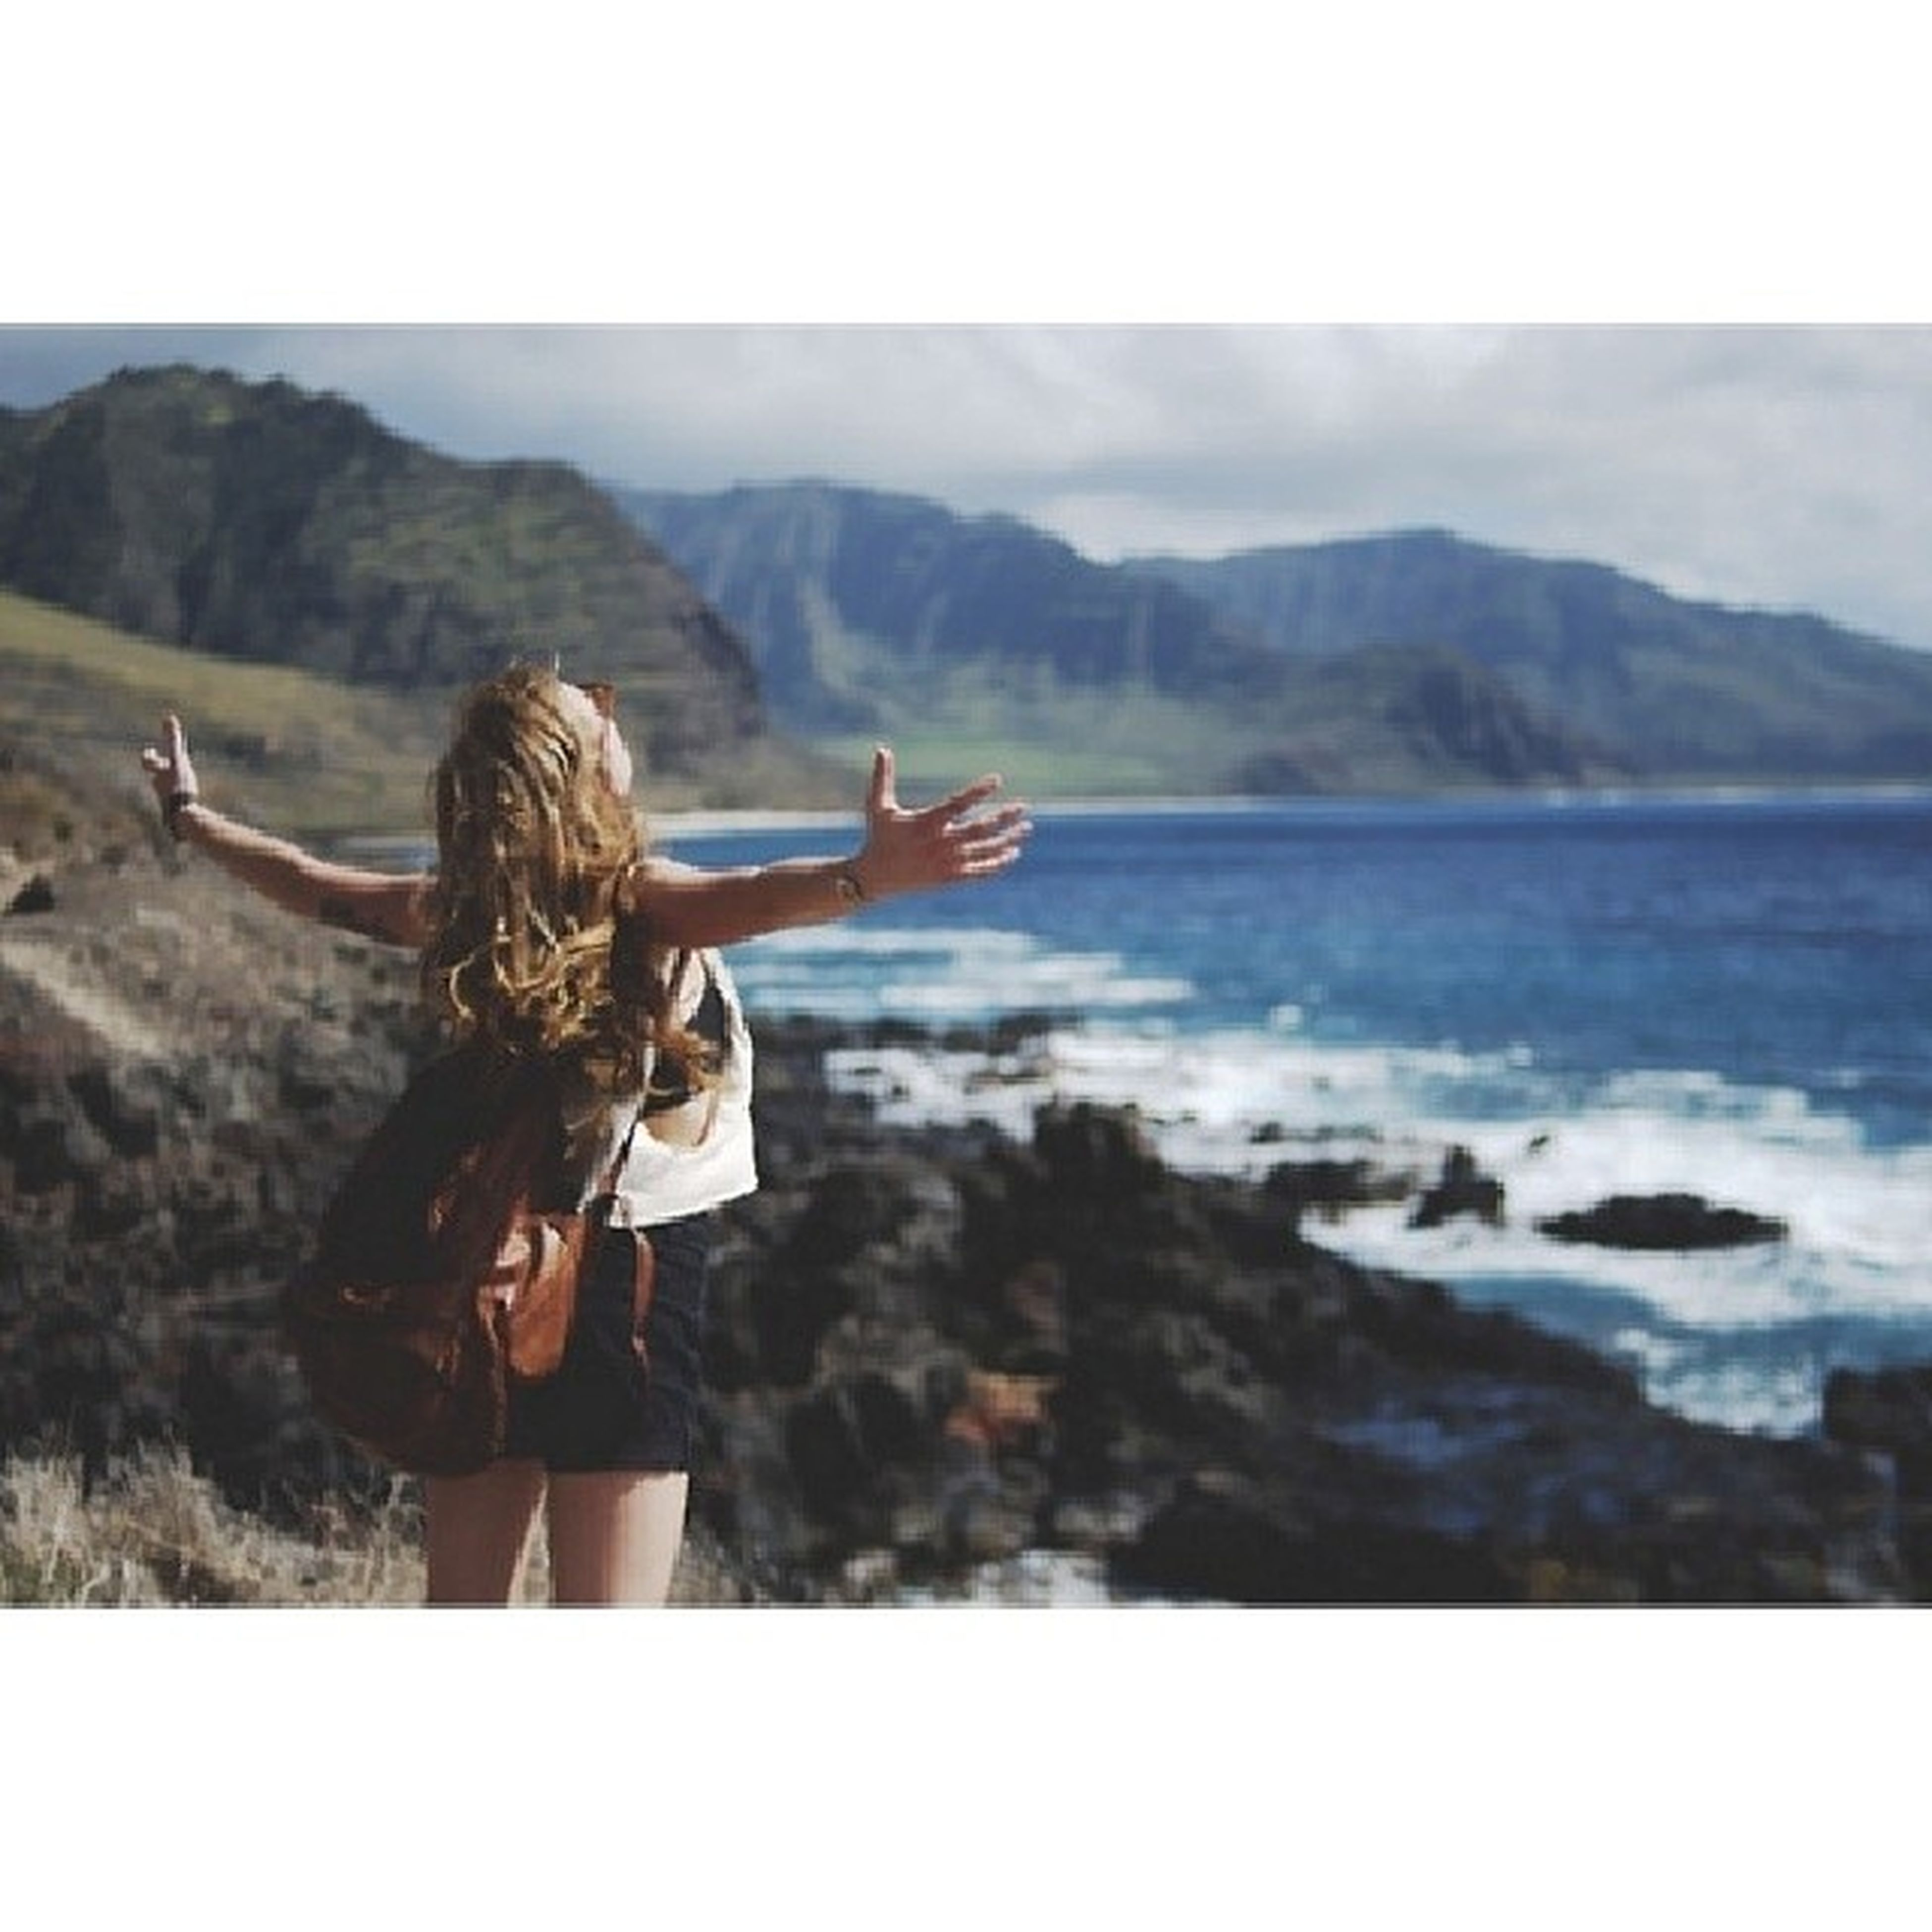 lifestyles, leisure activity, young adult, young women, sea, mountain, person, transfer print, long hair, sky, standing, auto post production filter, tranquil scene, tranquility, scenics, beauty in nature, water, rear view